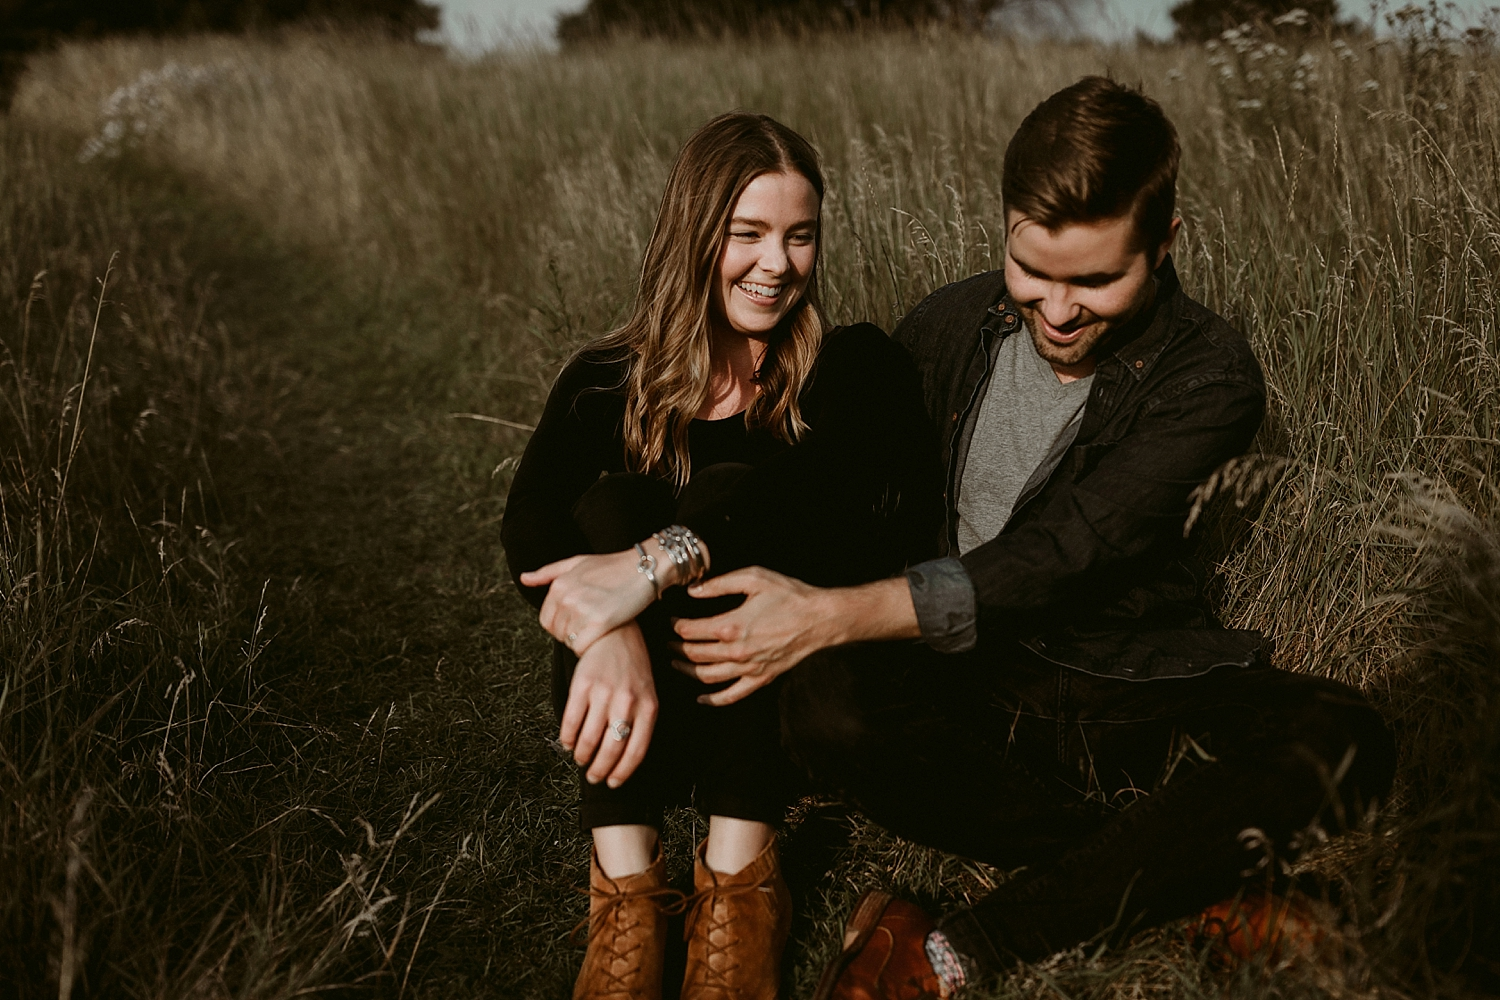 Intimate-Sunset-Couples-Session-123.jpg